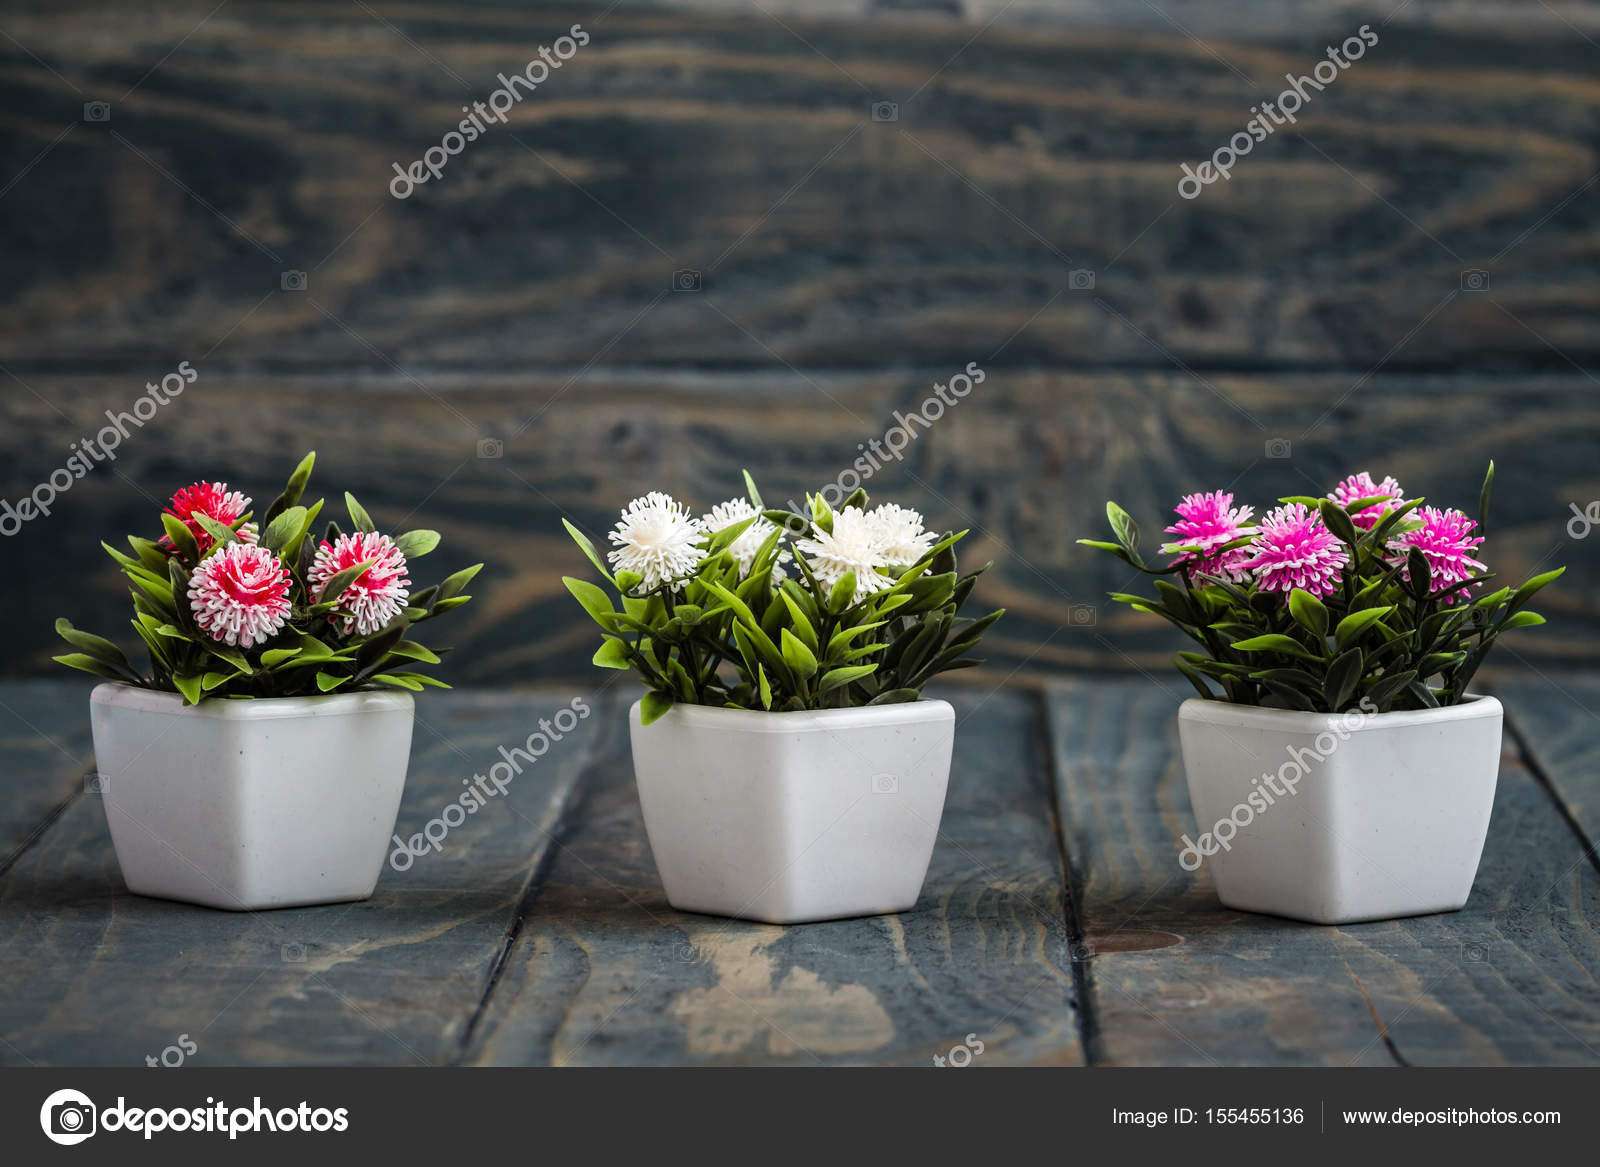 Gerani Artificiali Fiori Artificiali In Flowerpots Bianco Foto Stock Hskoken